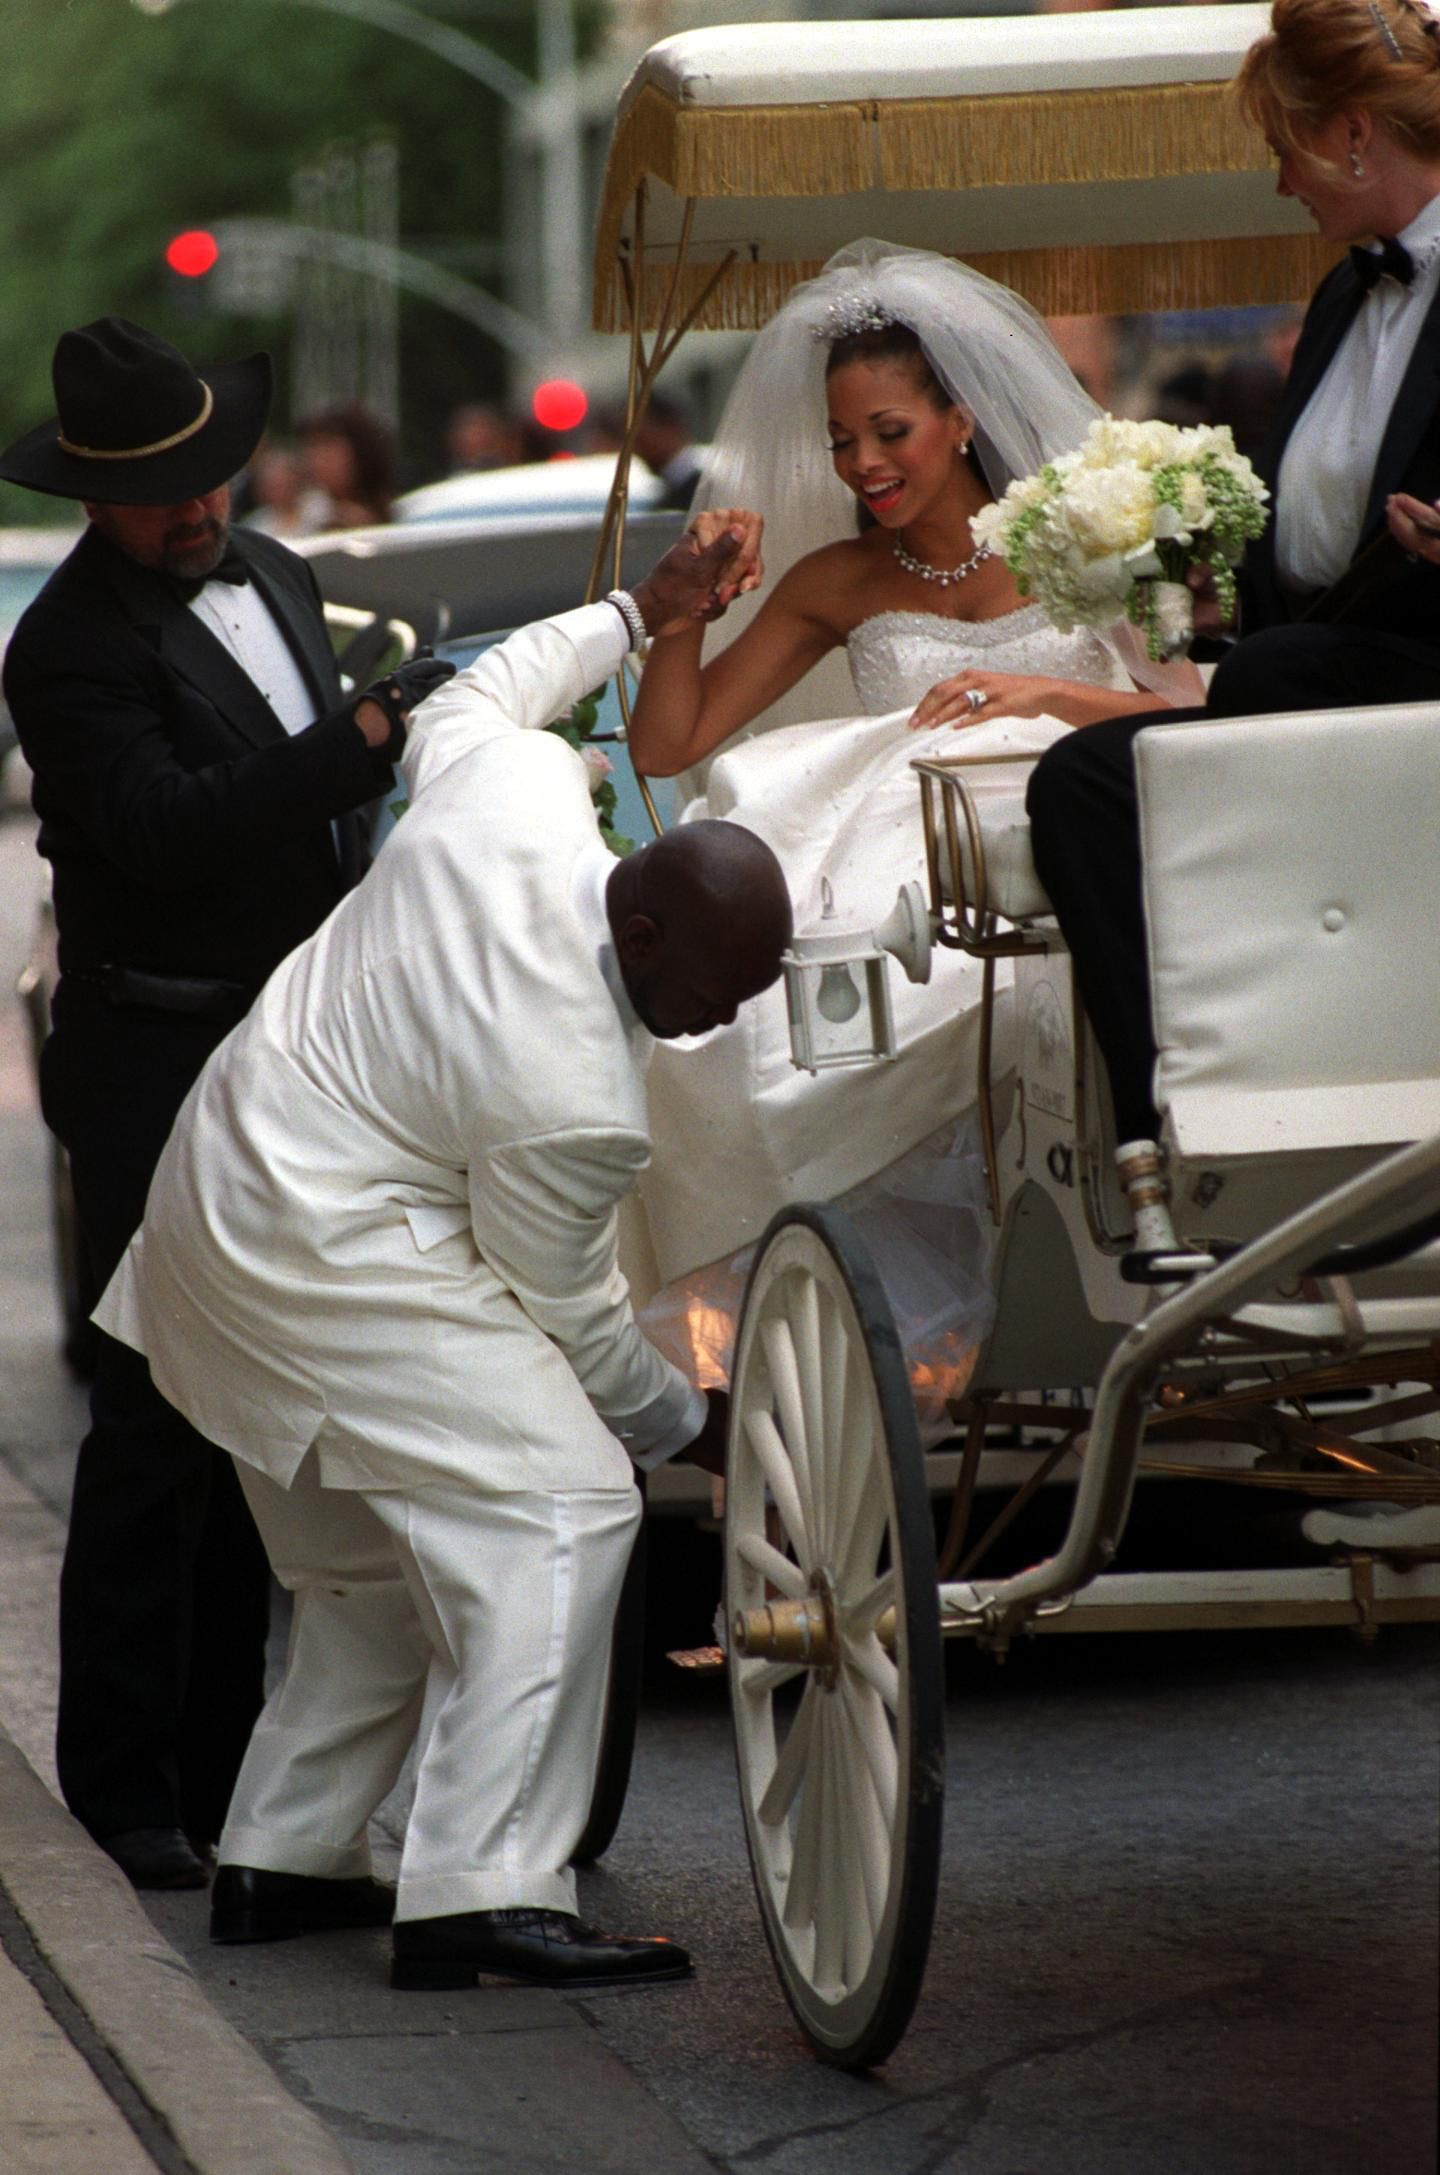 Emmitt Smith, running back for the Dallas Cowboys, and Pat Lawrence were married today. Emmitt Smith is shown helping his new wife from the carraige as they arrive at the Fairmont Hotel.